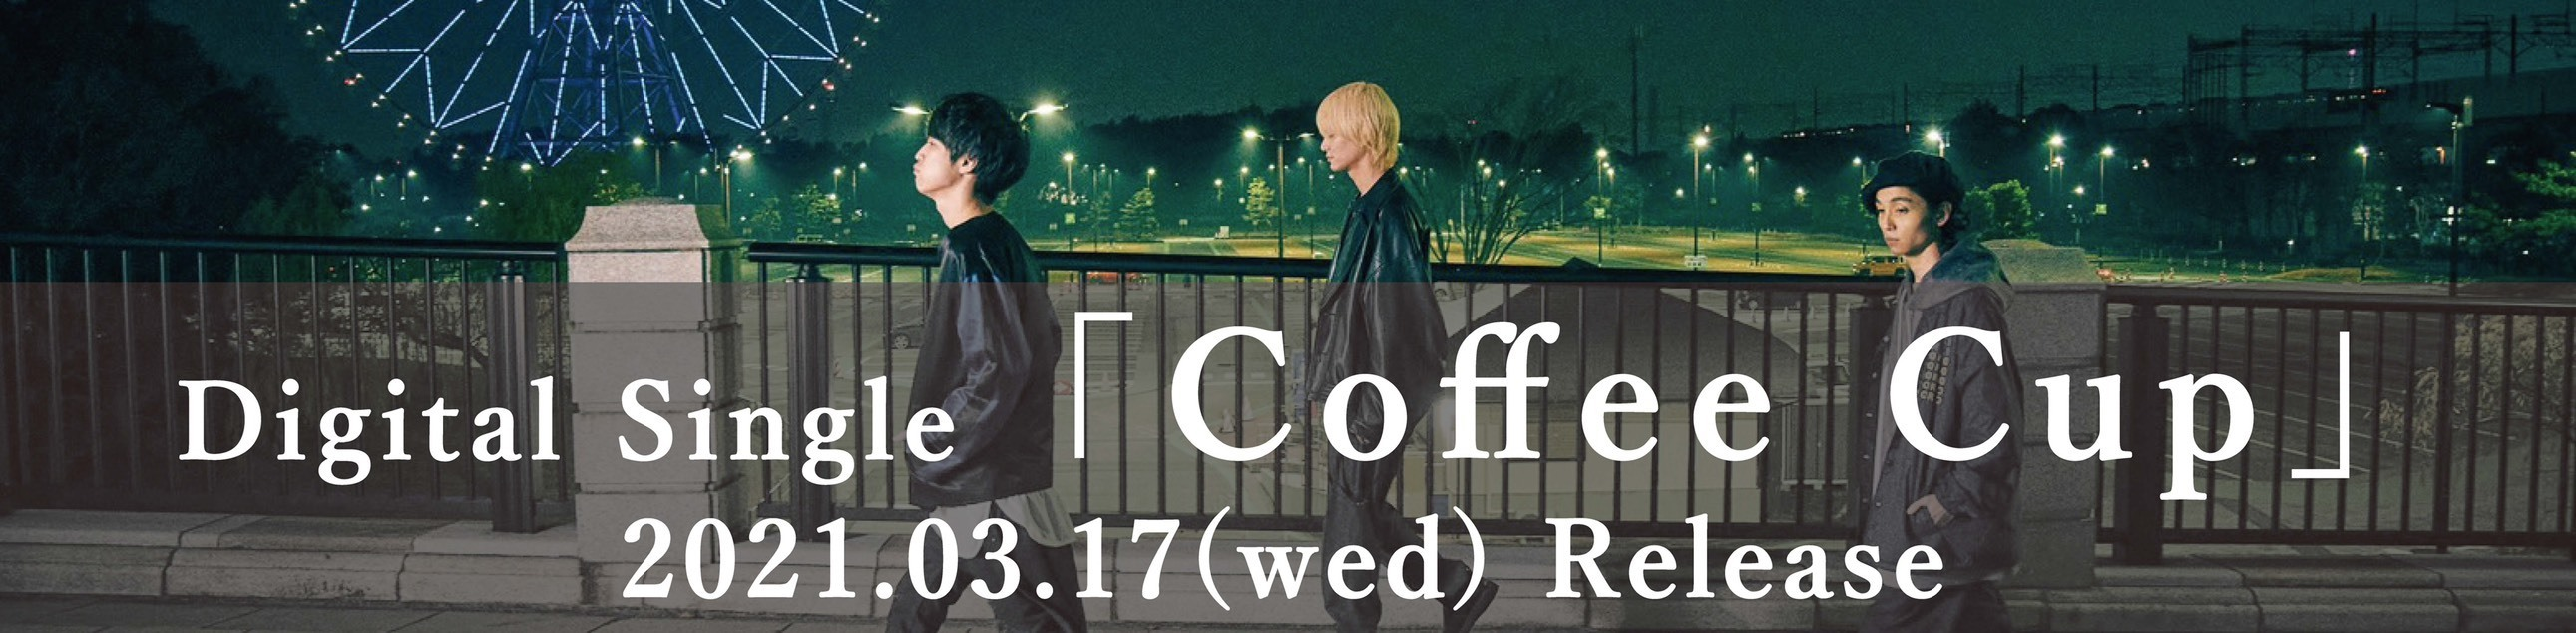 Digital Single「Coffee Cup」